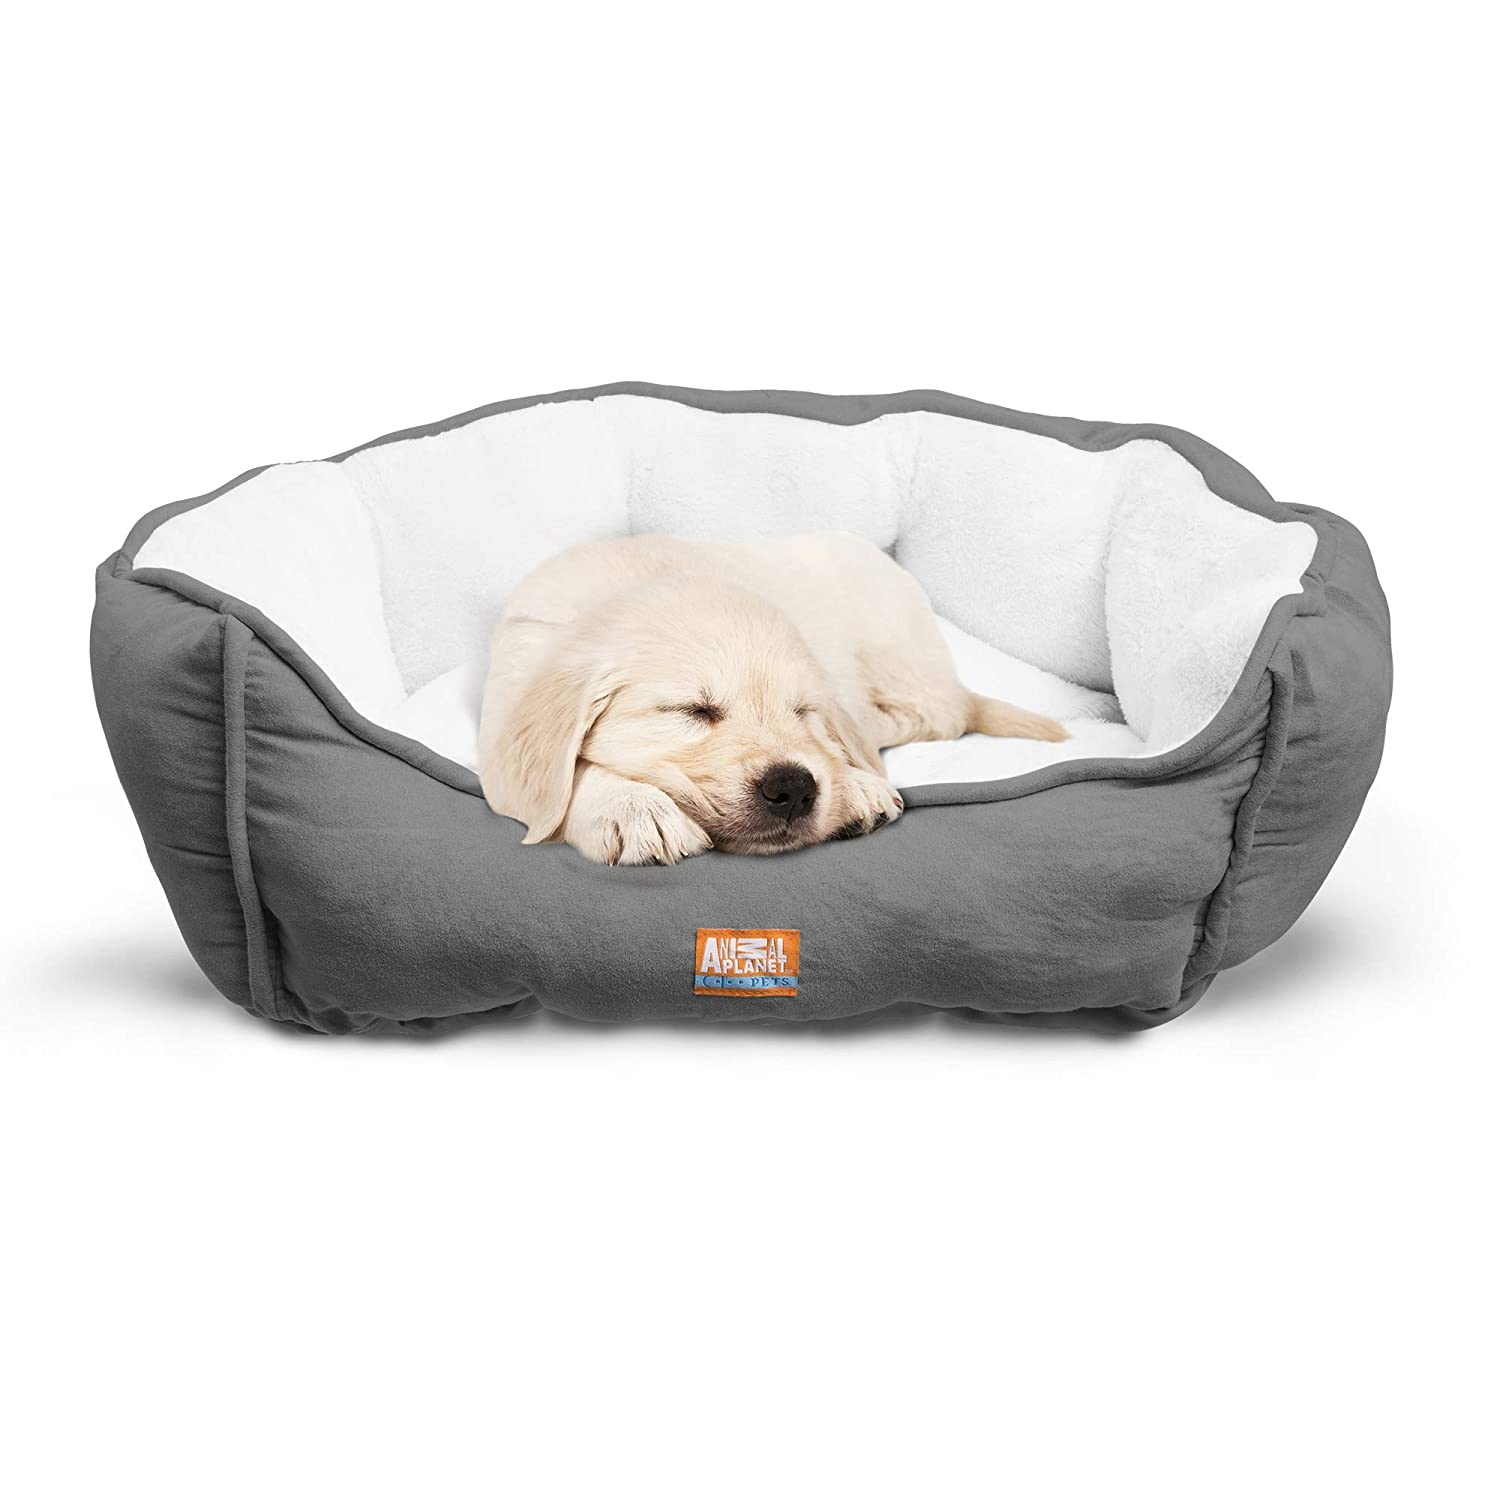 Animal Planet Round Plush Micro Suede Sherpa Bolster Pet Bed for Dogs Cats, Puppies, and Small Toy Breeds Cuddly and Warm for Burrowing and Snuggling, Easy-to-Clean 24 x 17 x 9 Gray